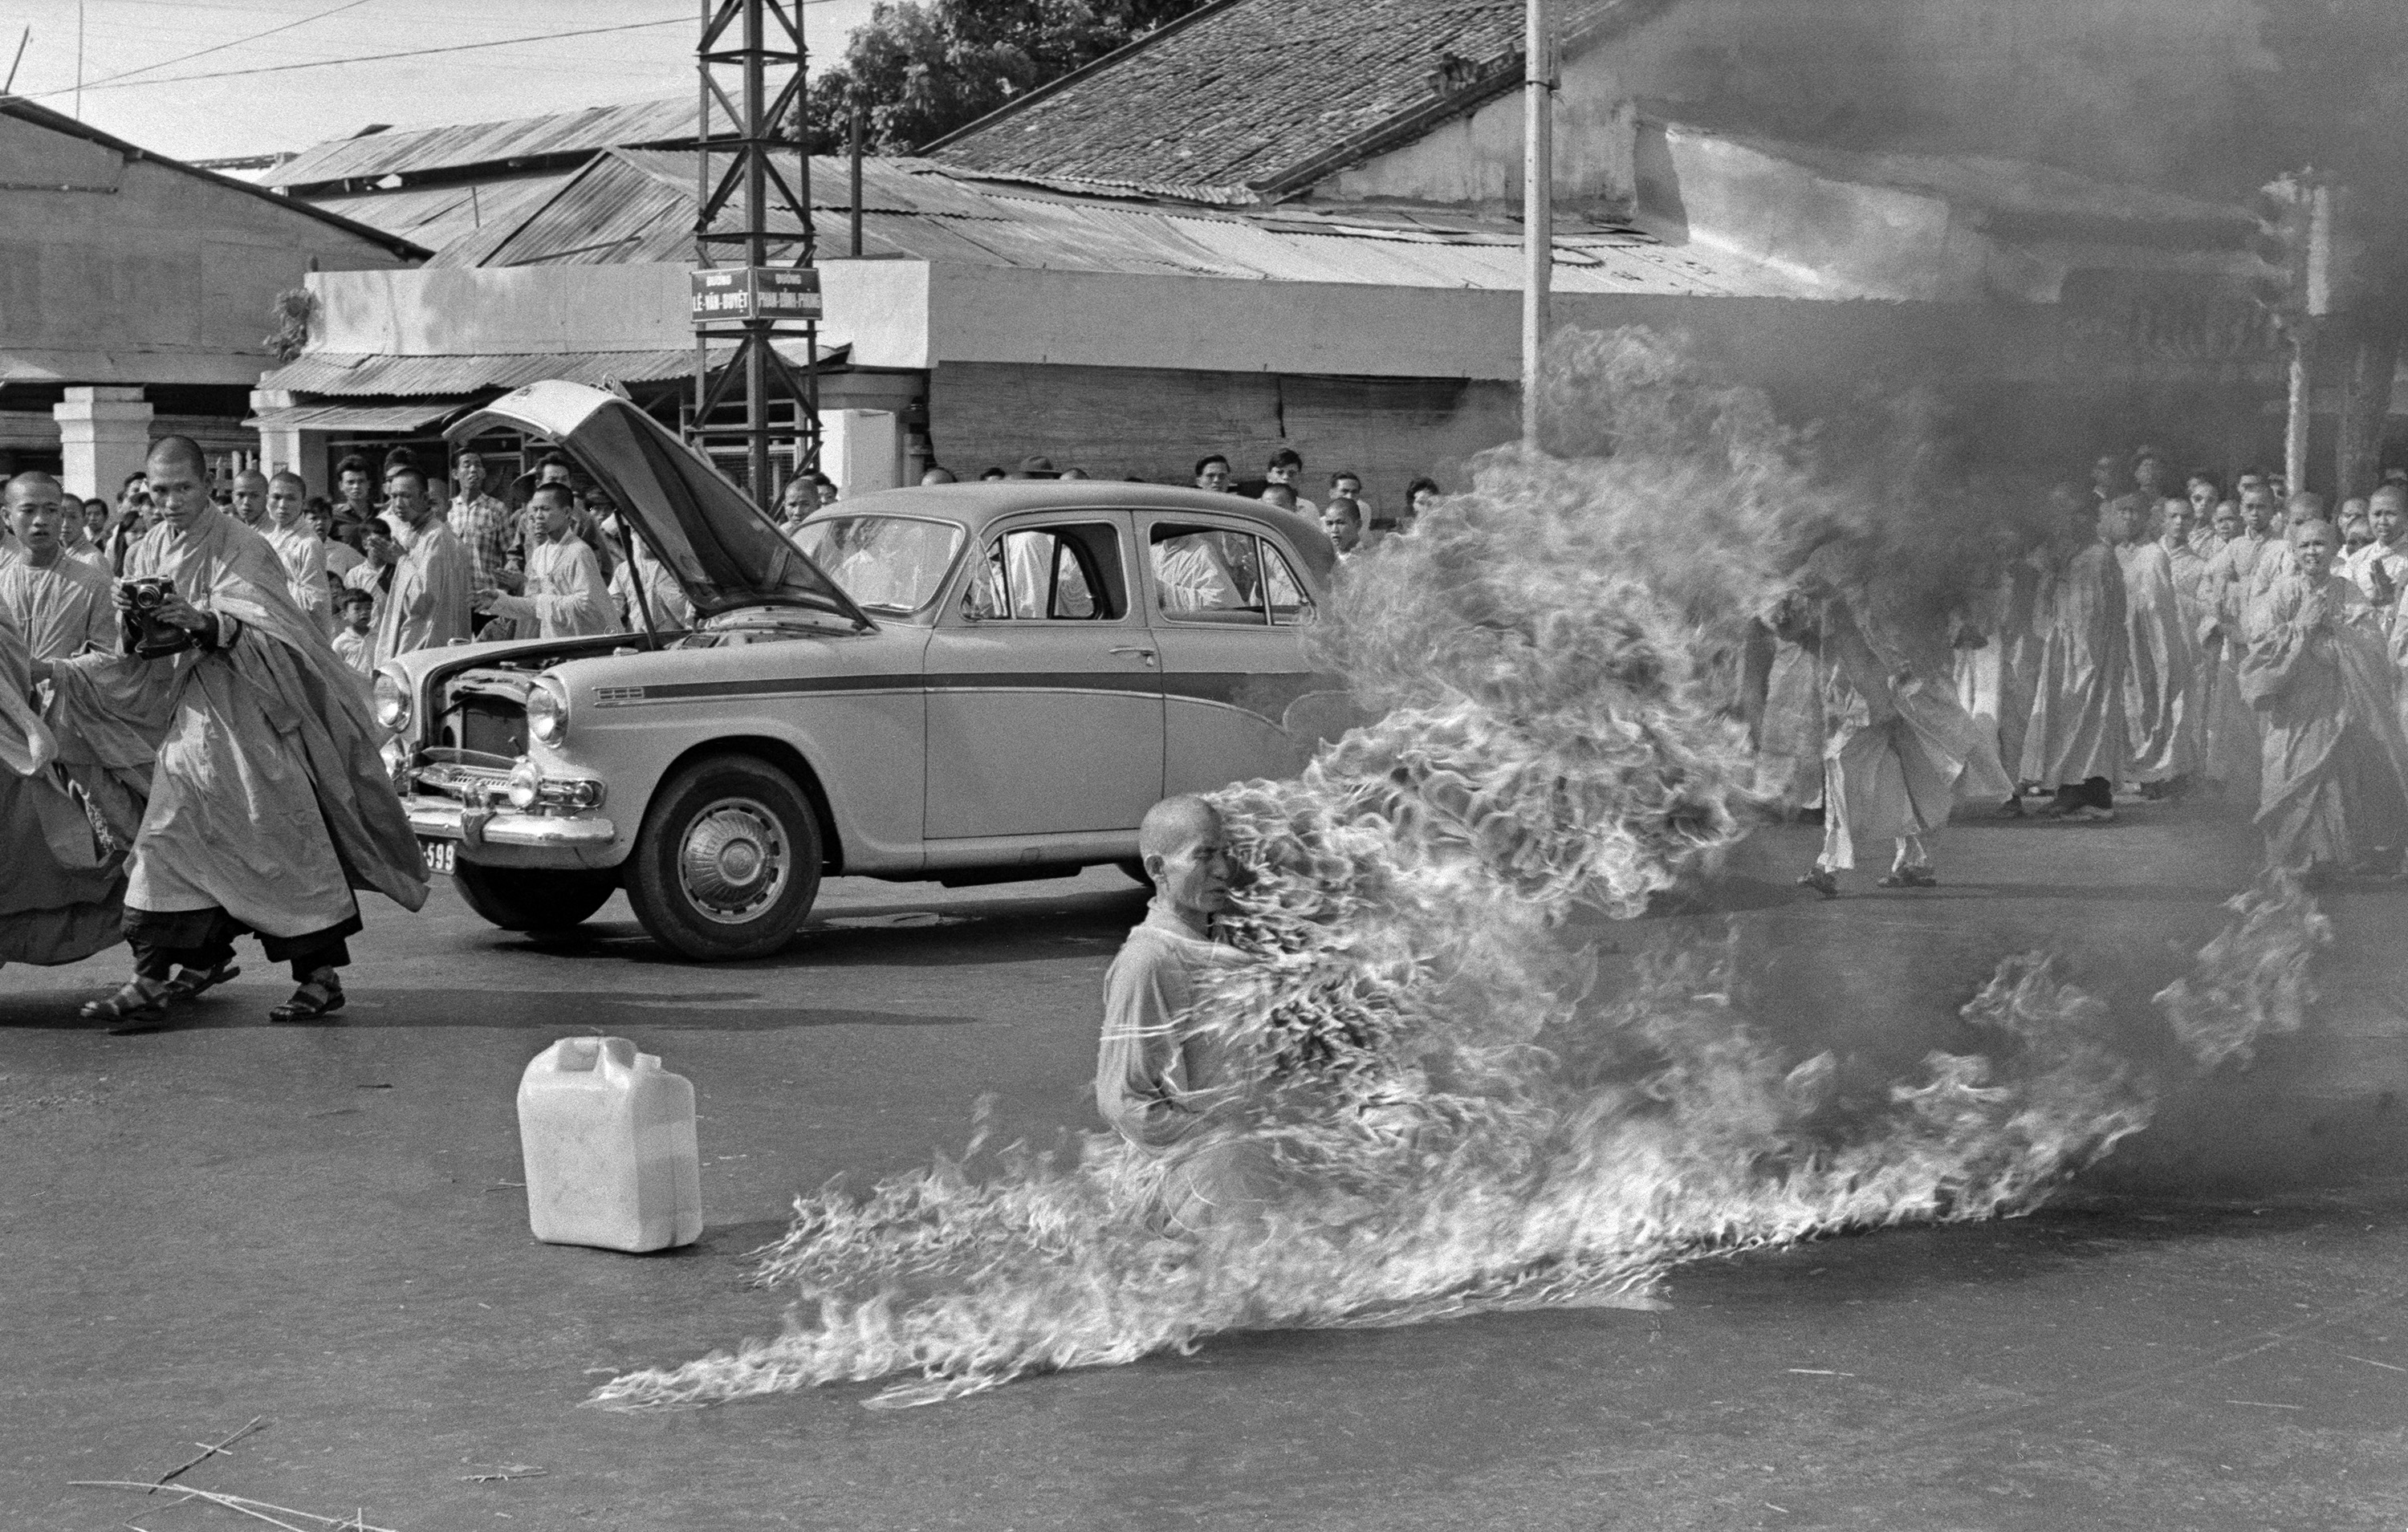 Thích Quảng Đứcu0027s Self Immolation During The Buddhist Crisis (created By  Malcolm Browne; Nominated By Ramaksoud2000)